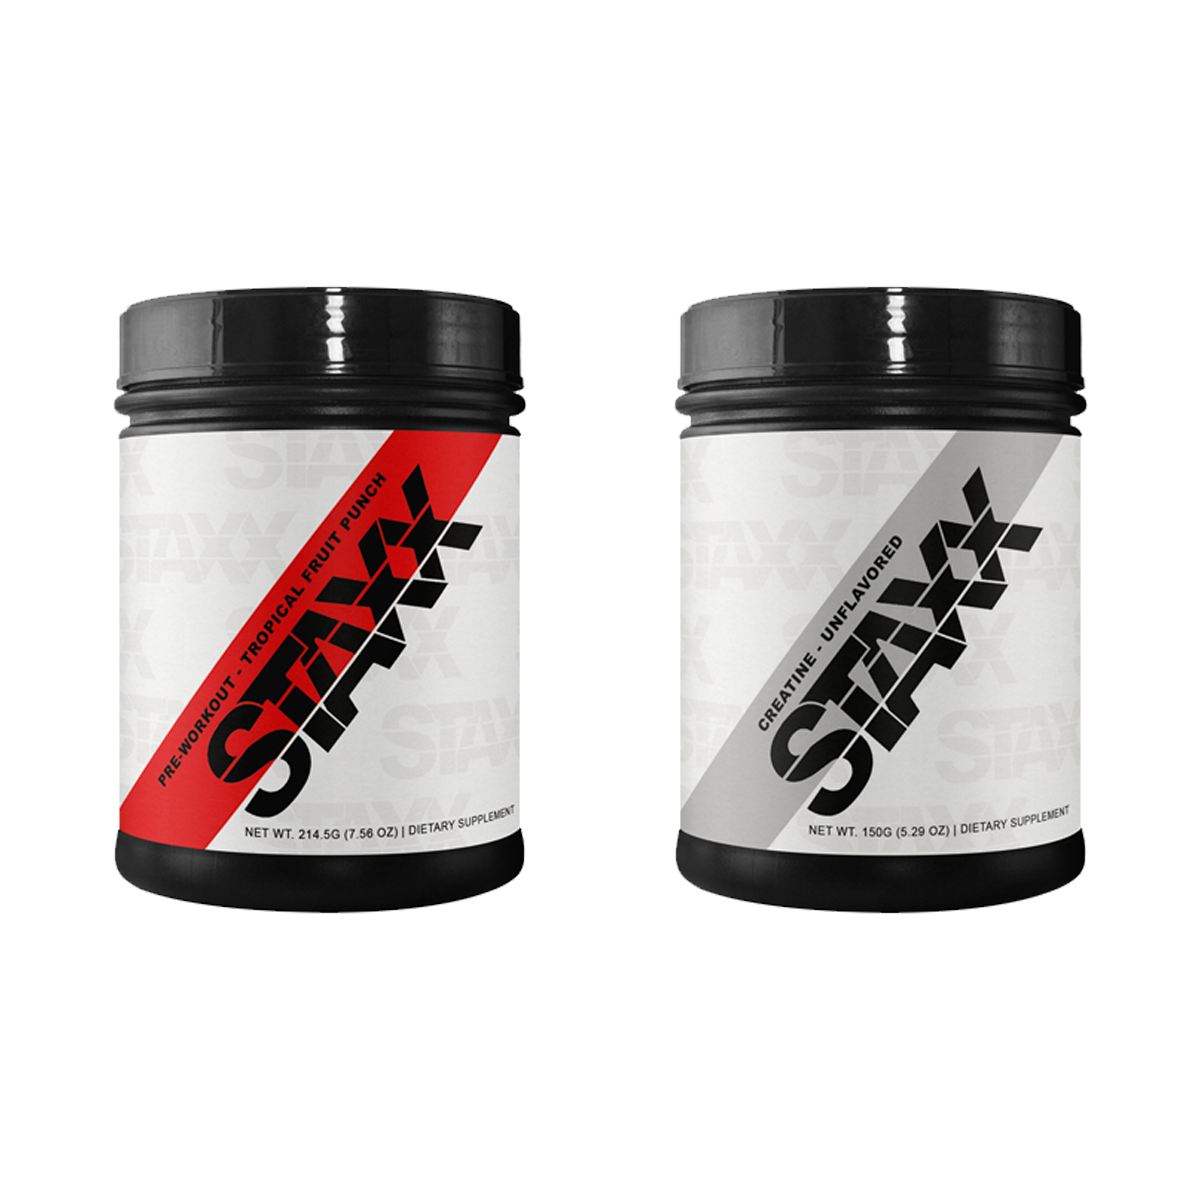 STAXX Pre-workout Fruit Punch Creatine Unflavored